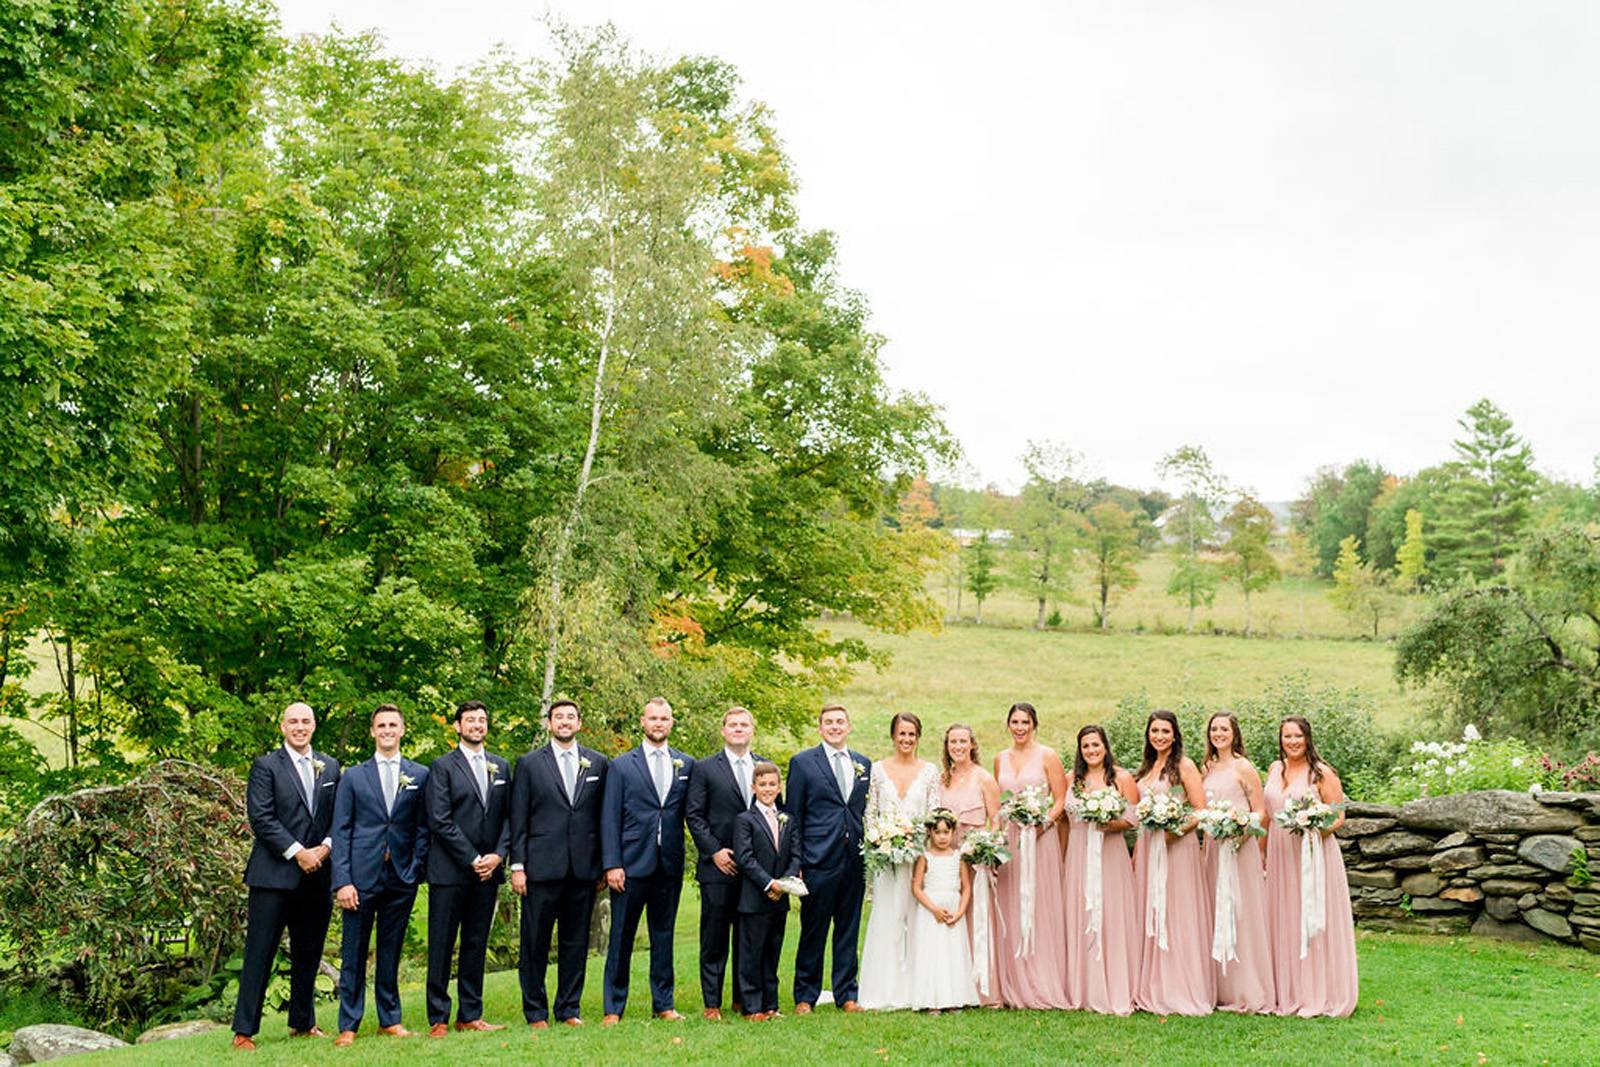 Bridesmaids in blush and groomsmen in navy with bride and groom on wedding day at the Inn at the Rou